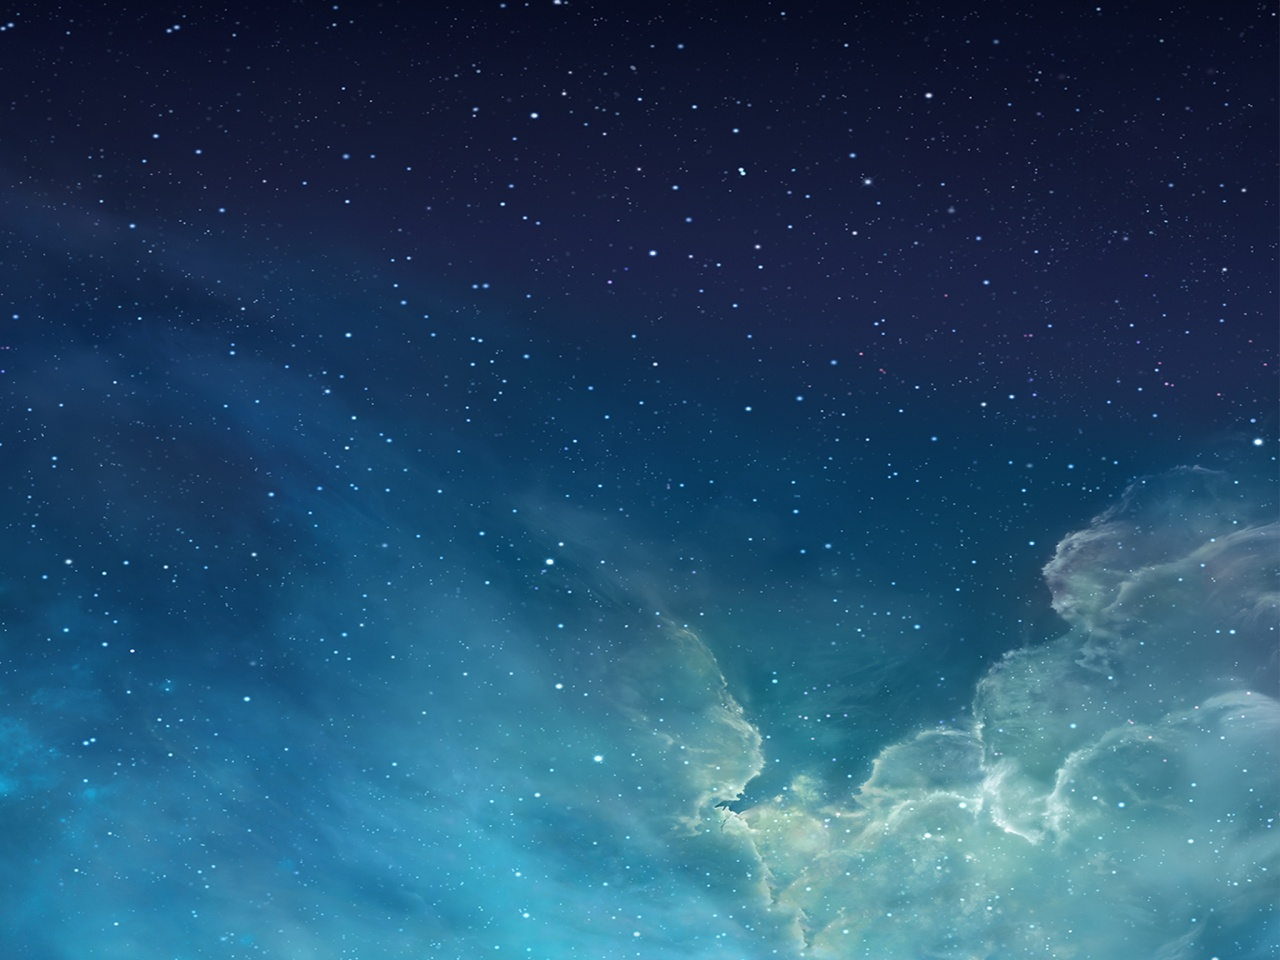 Free Download Hd Ios 8 Wallpaper 1280x960 For Your Desktop